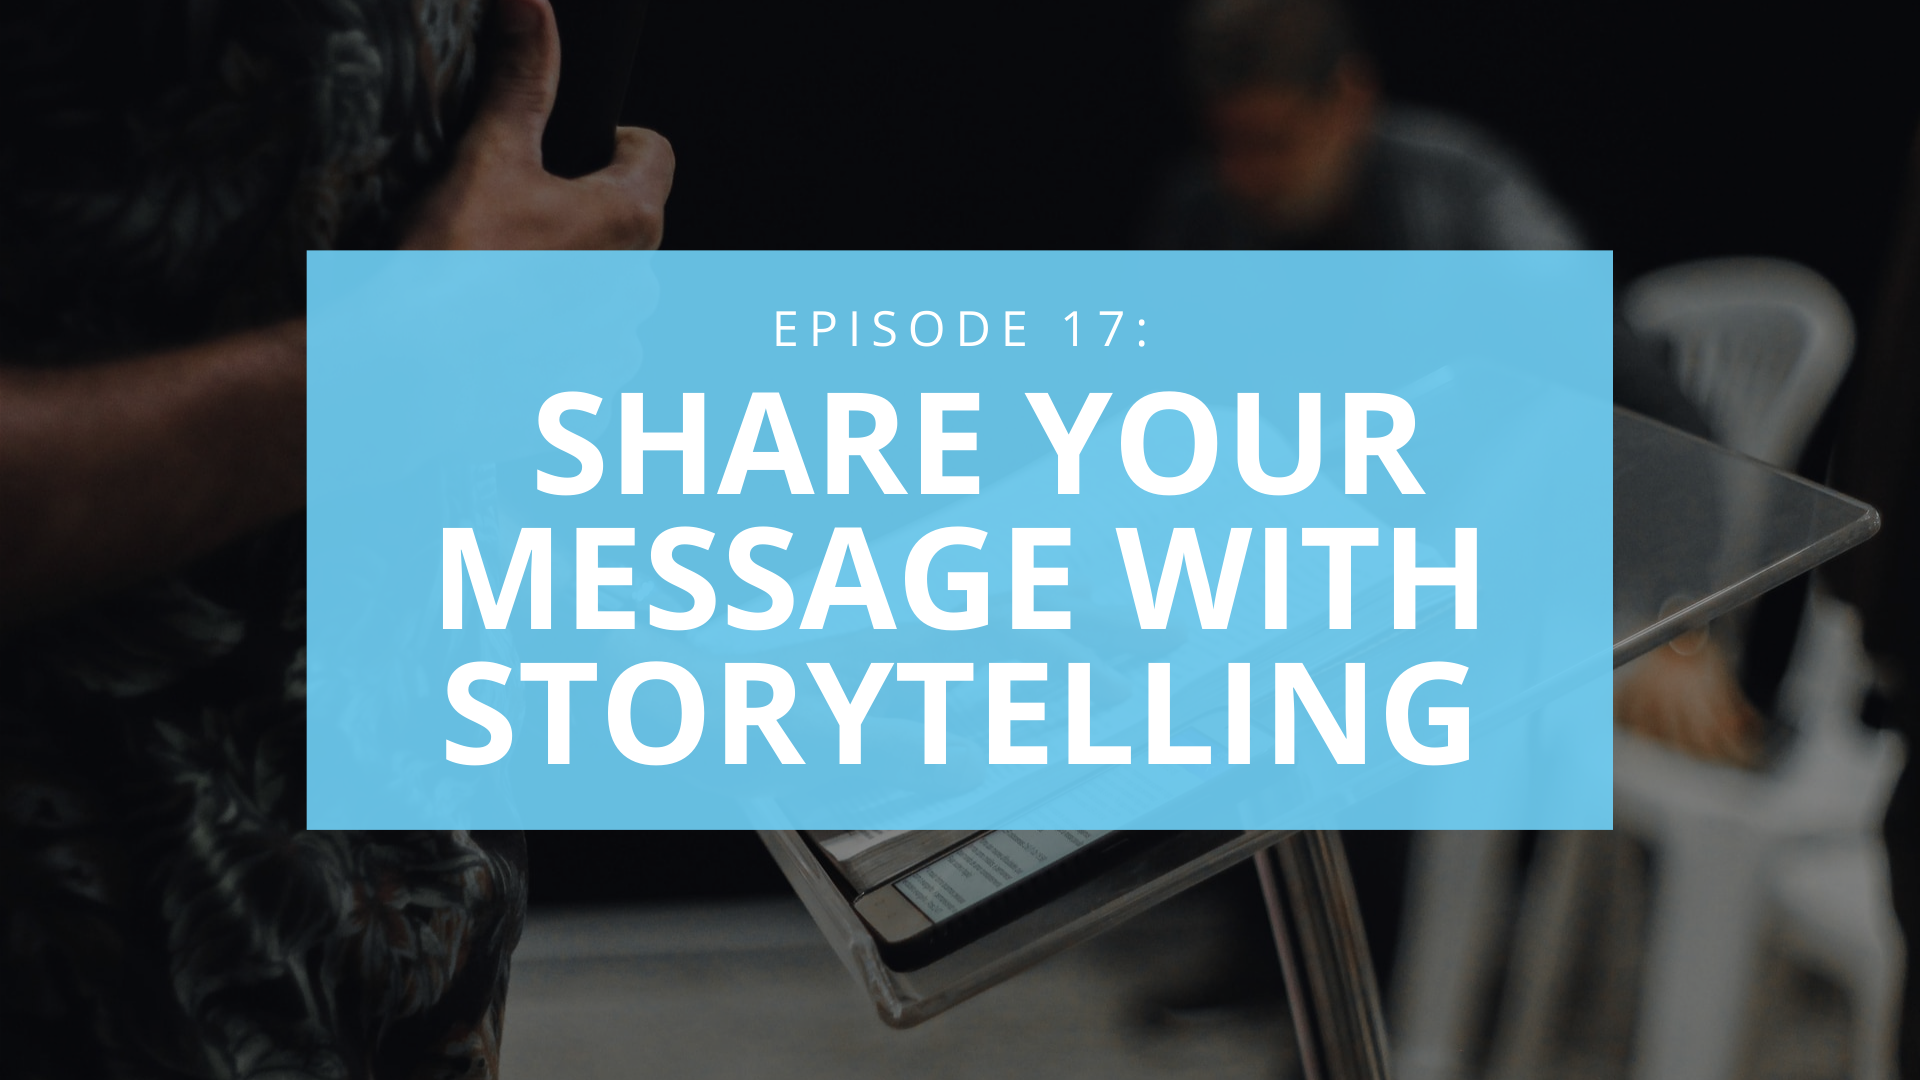 Share your message with storytelling